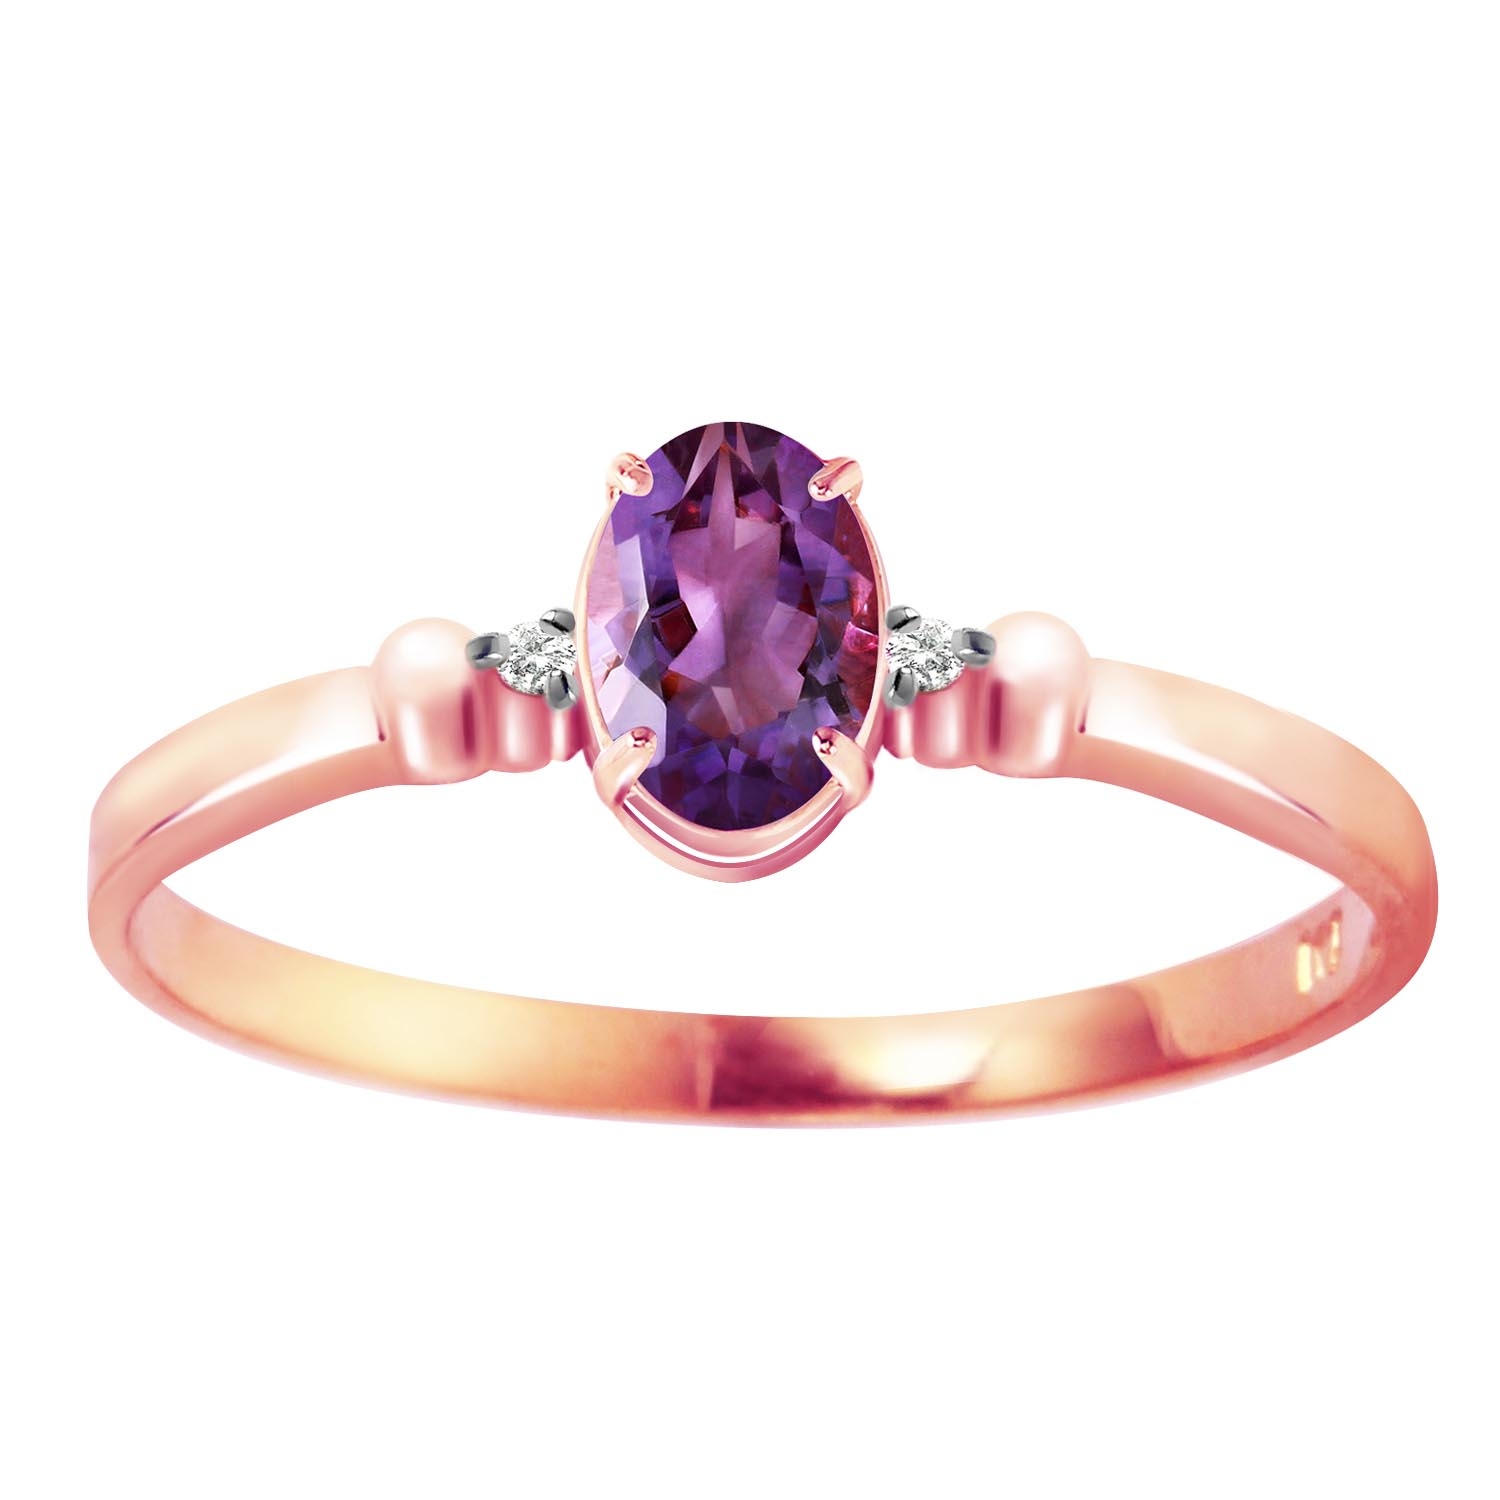 Stockists of Amethyst and Diamond Allure Ring 0.45ct in 9ct Rose Gold